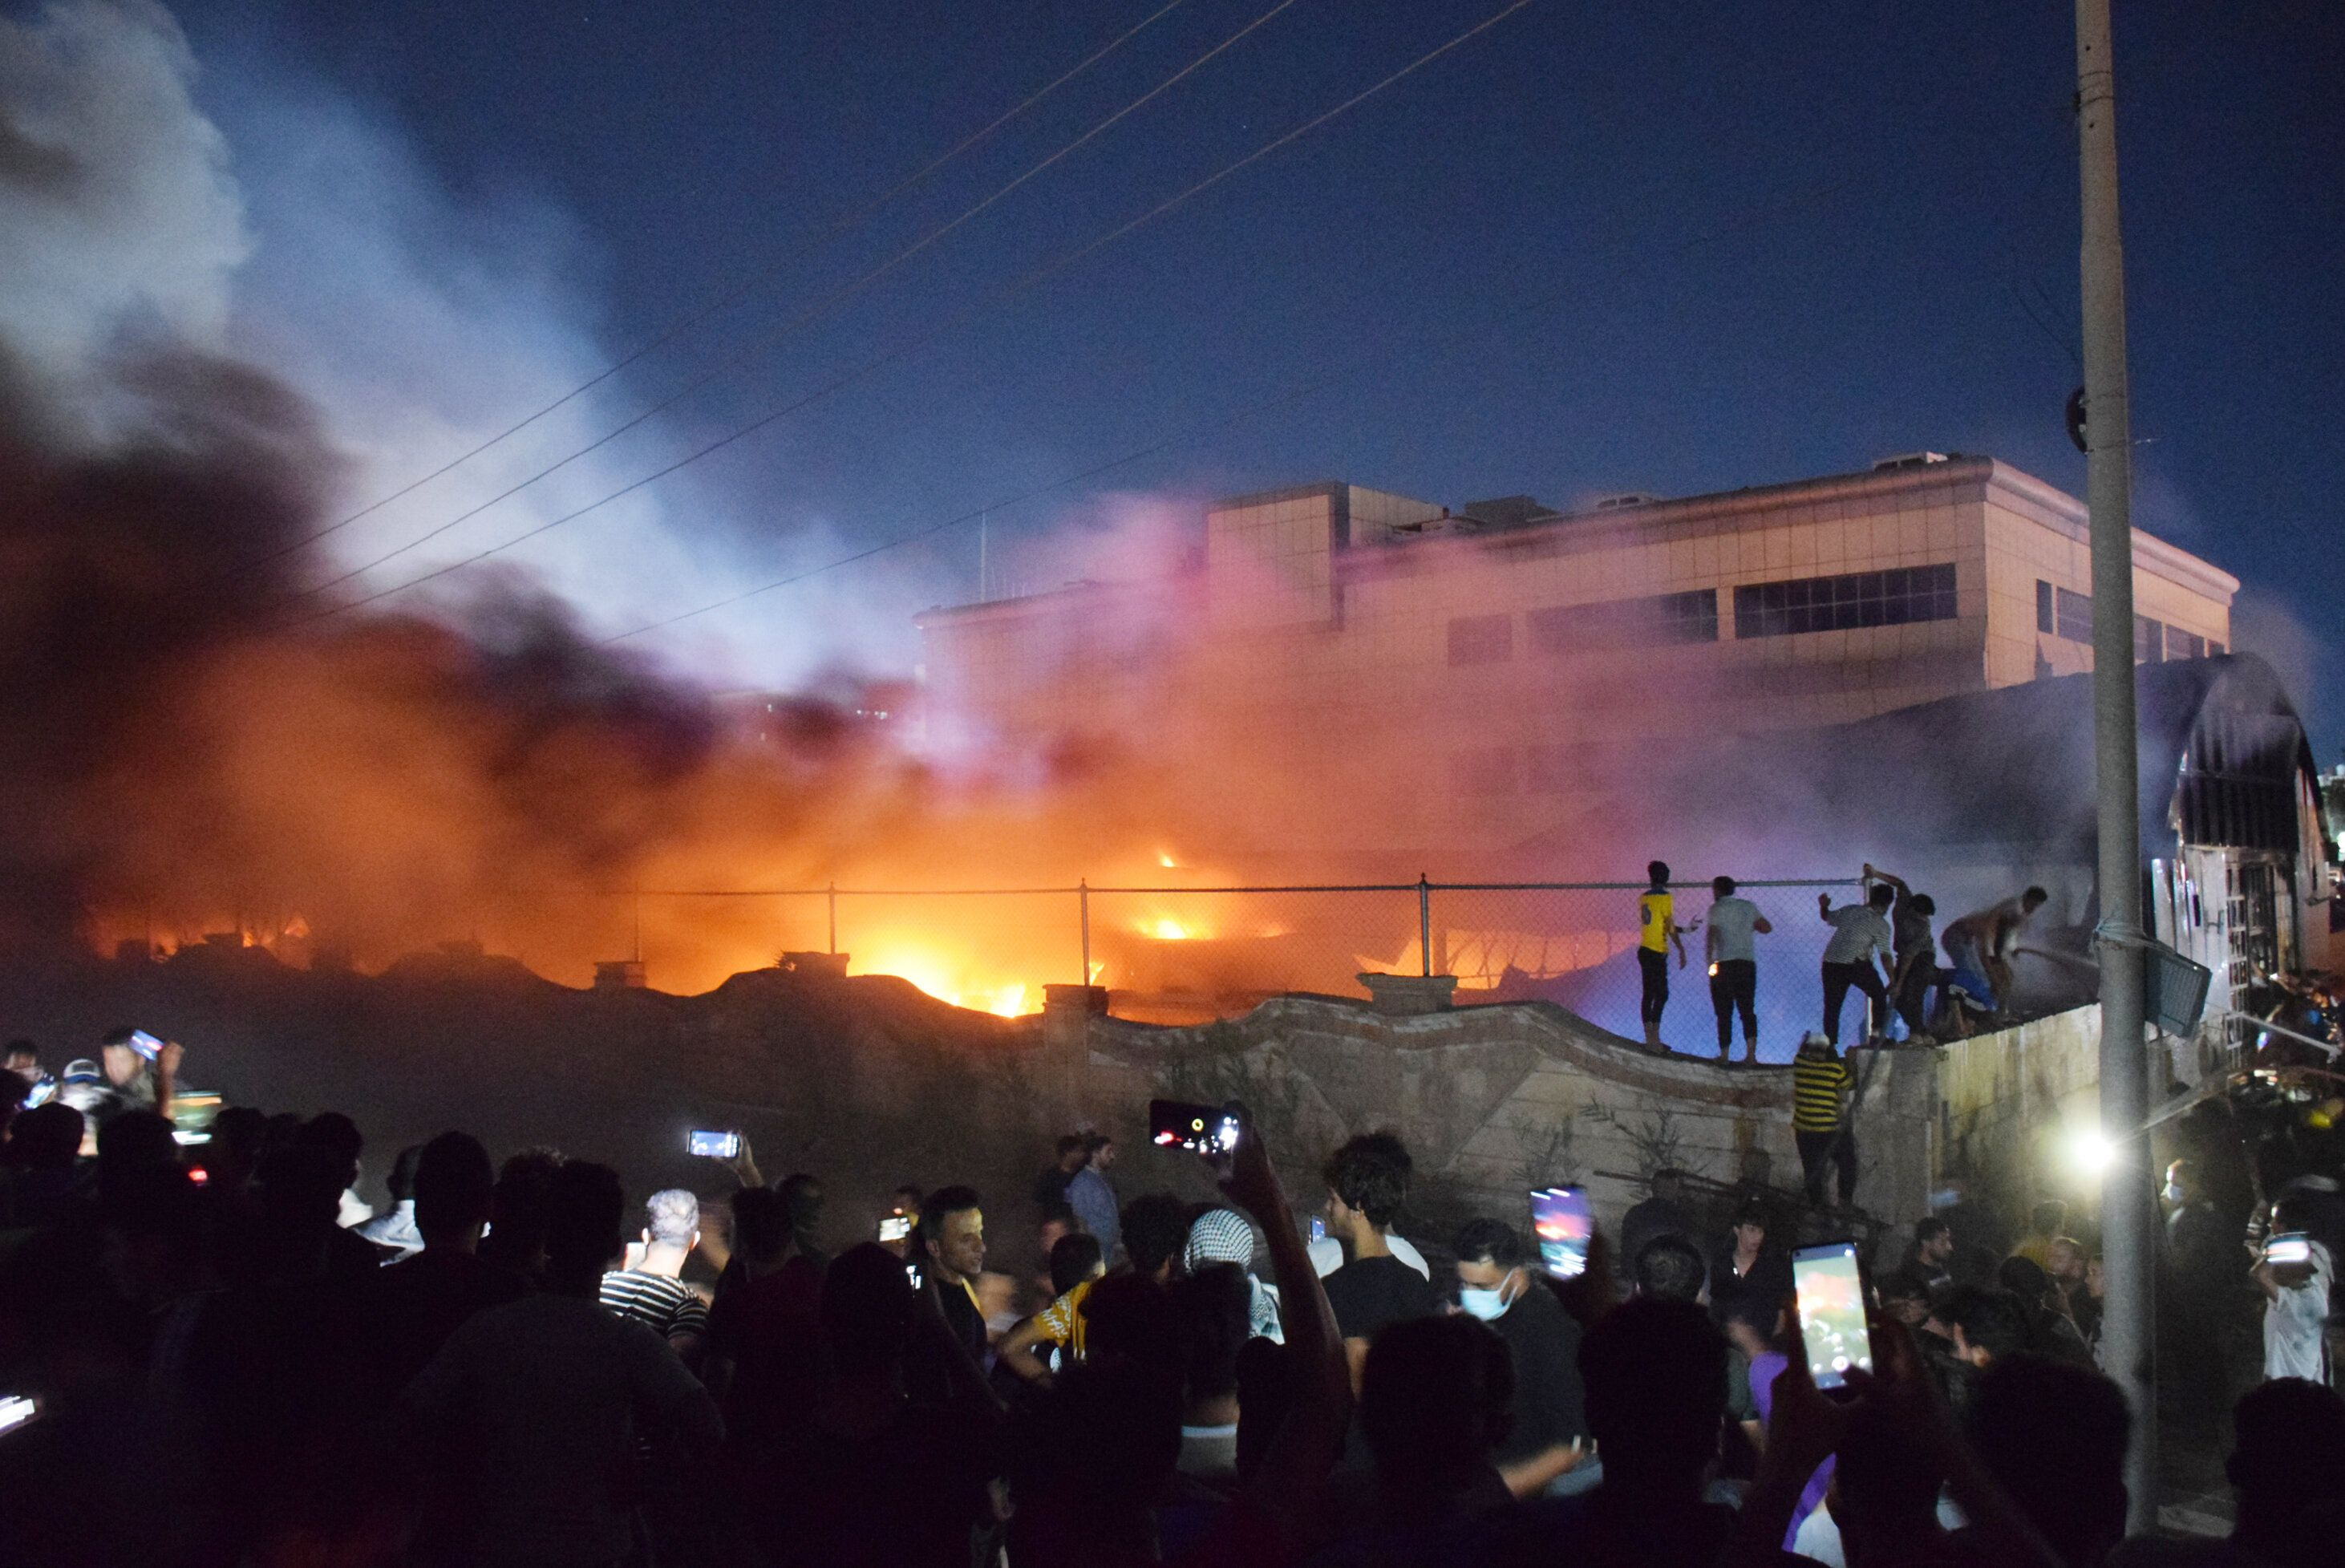 A fire broke out in a COVID-19 isolation ward of Al-Hussein Hospital in Nasiriya city in Dhi Qar governorate, Iraq on Tuesday